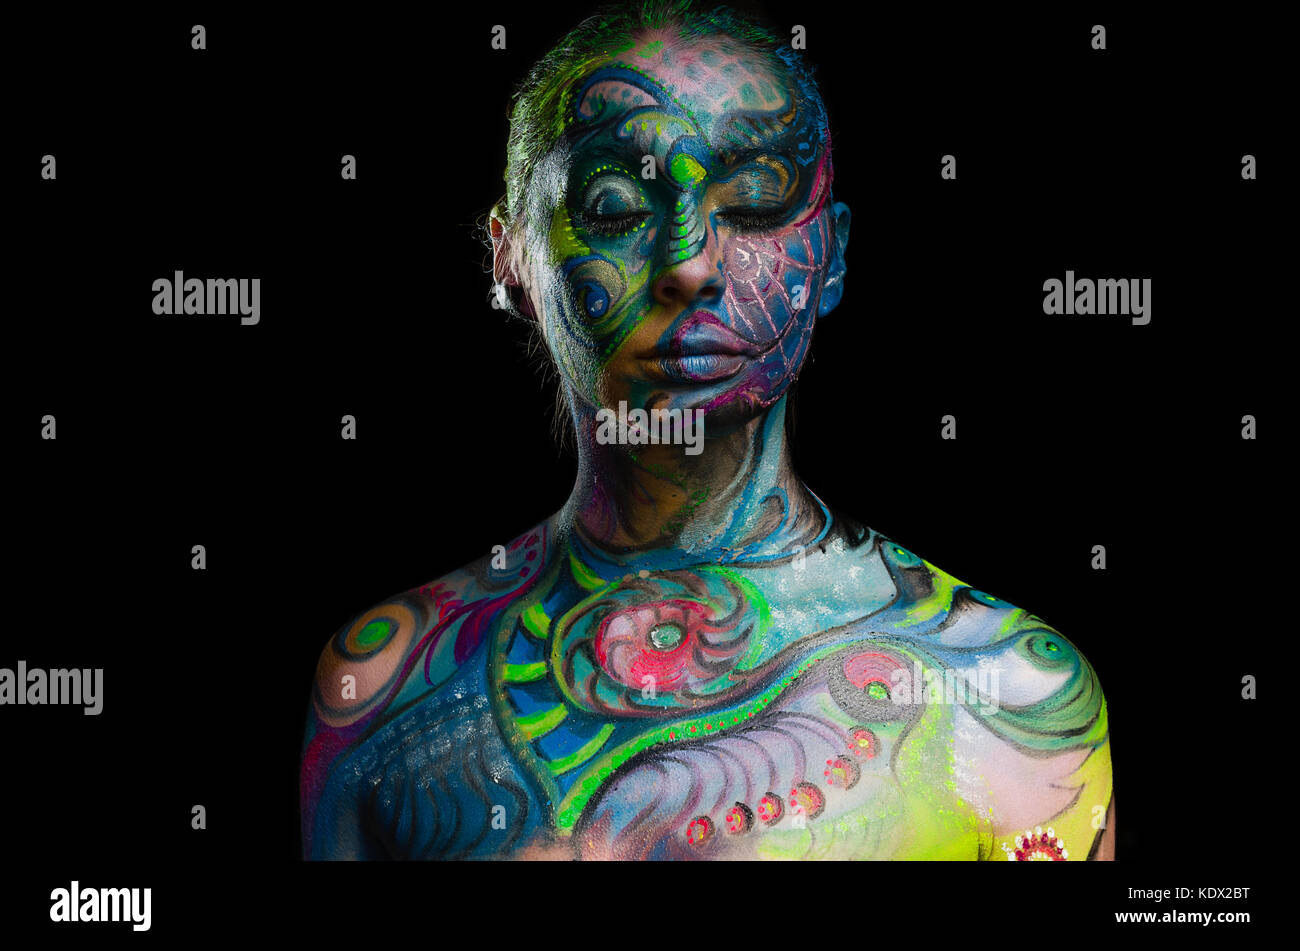 Belle body art - visage artistique (vue de face) Photo Stock